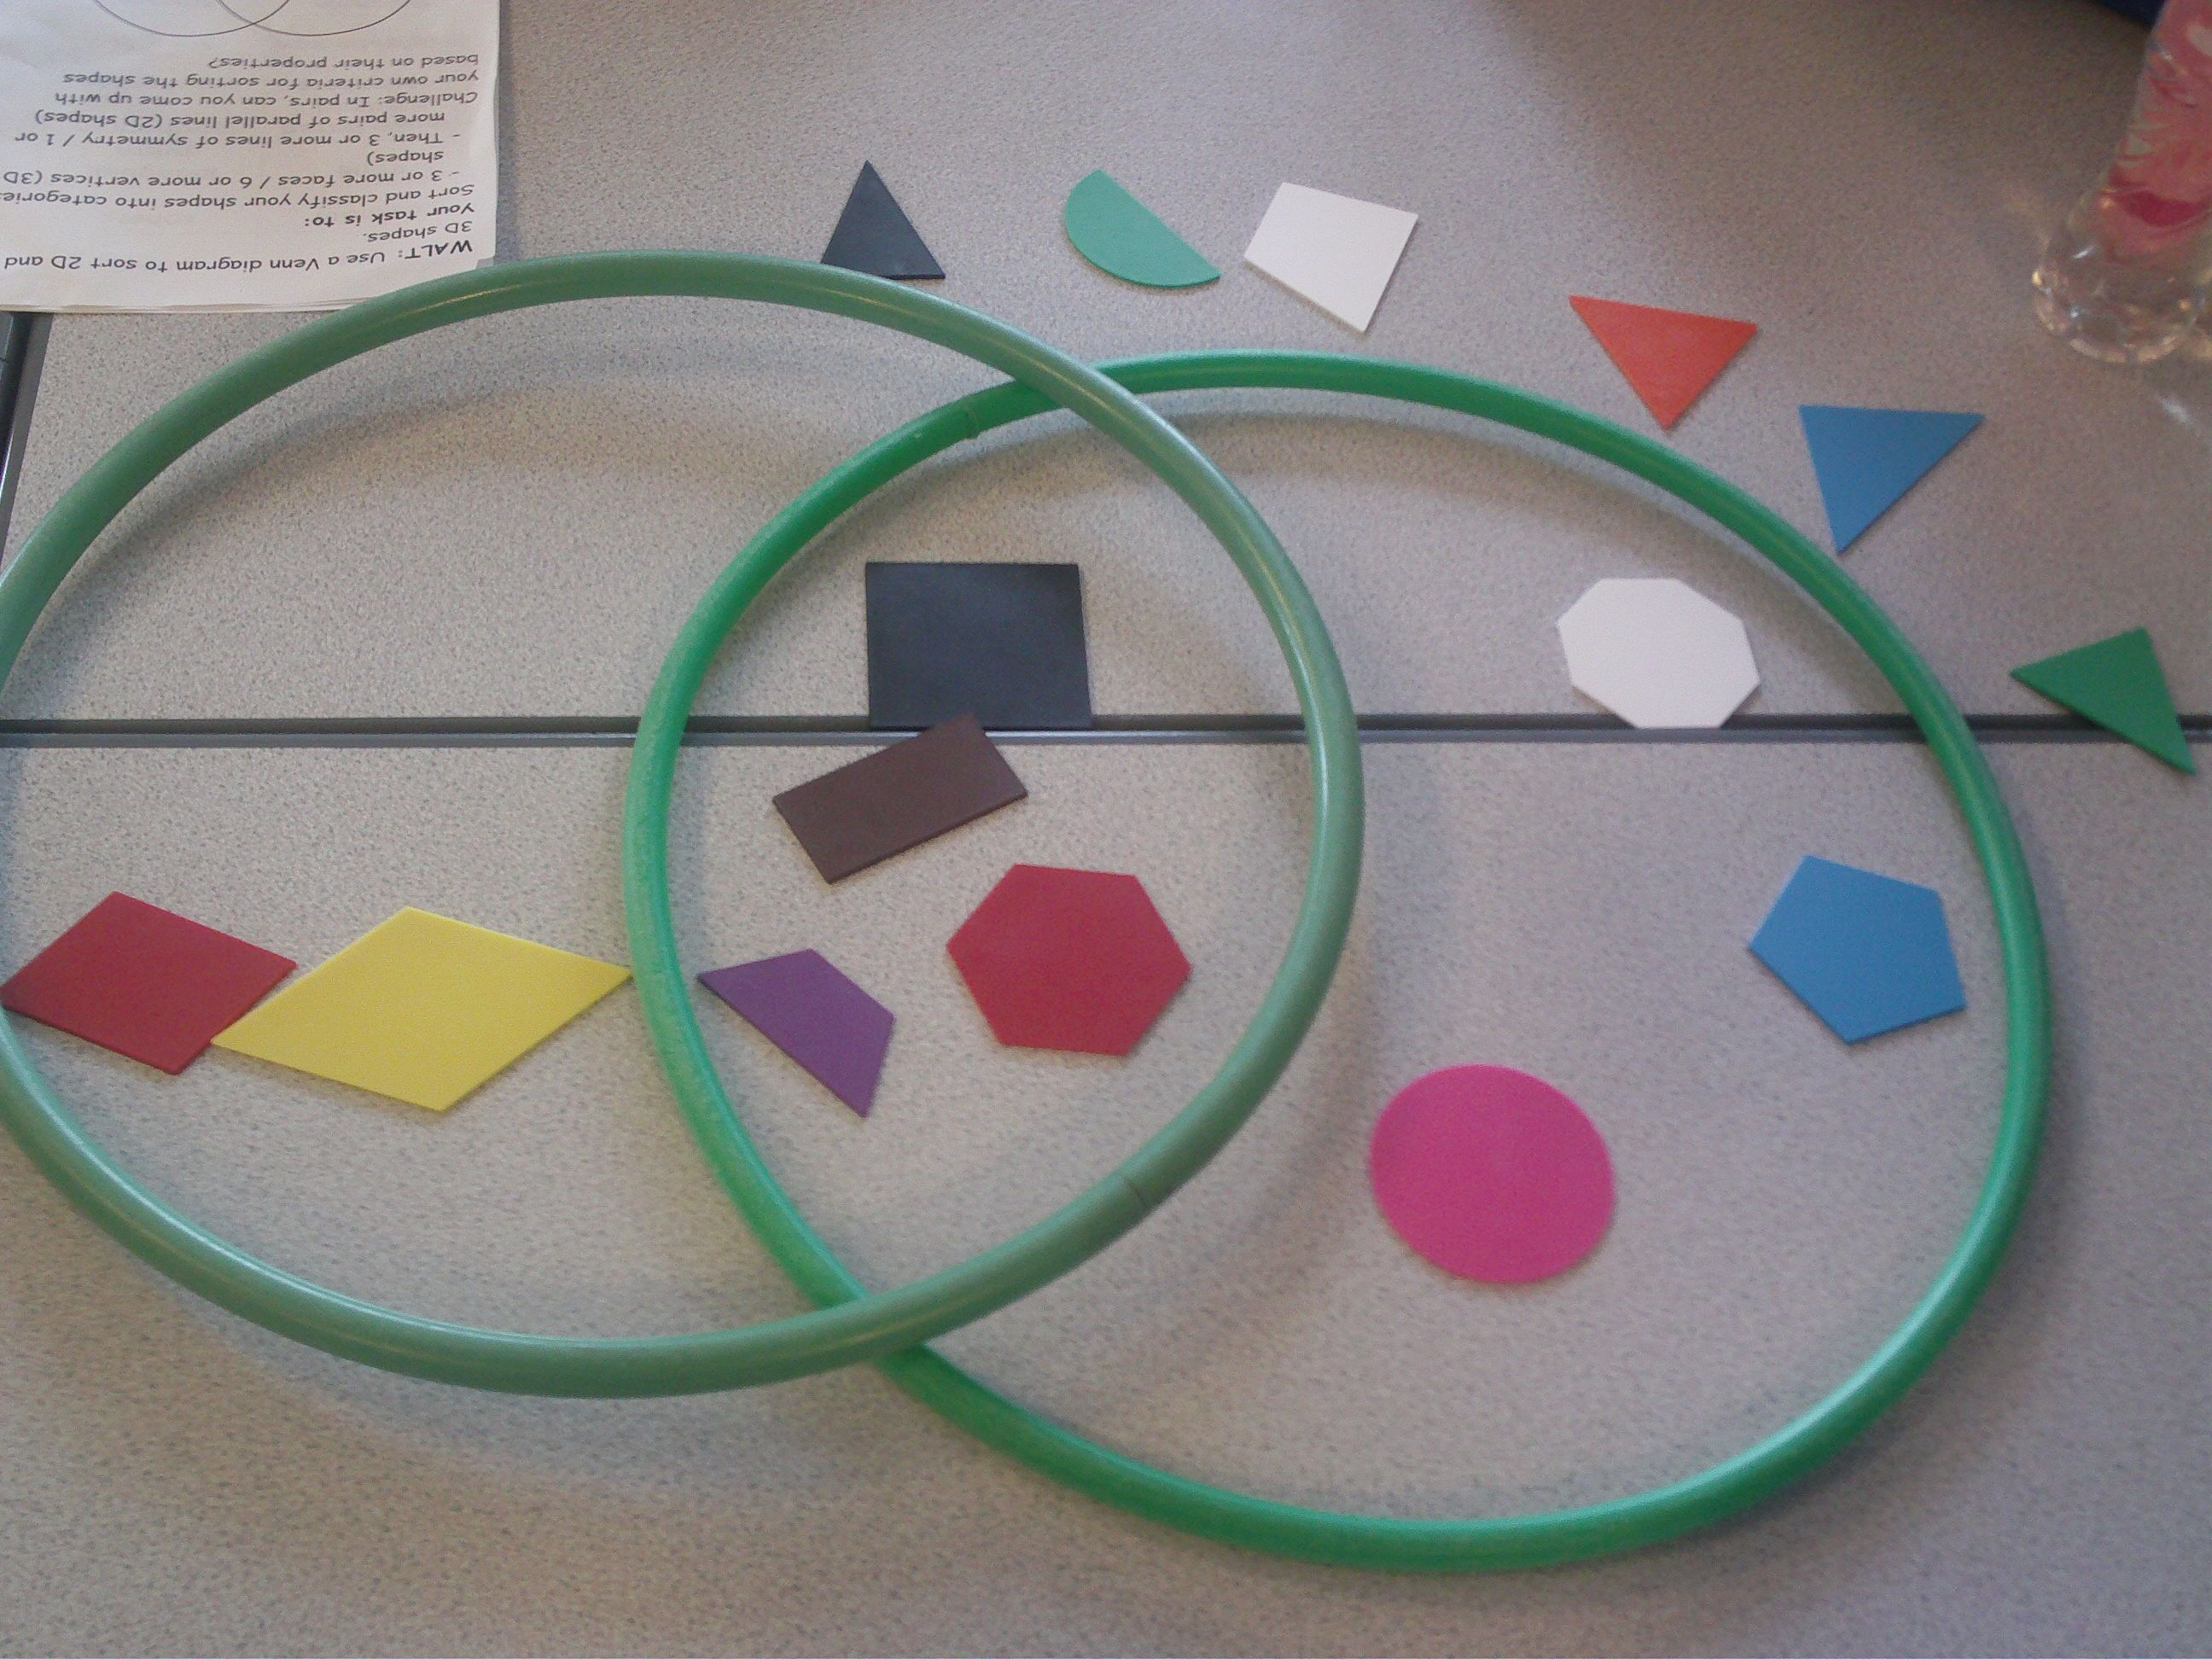 2d Or 3d Shape Sorting With Venn Diagrams According To 2